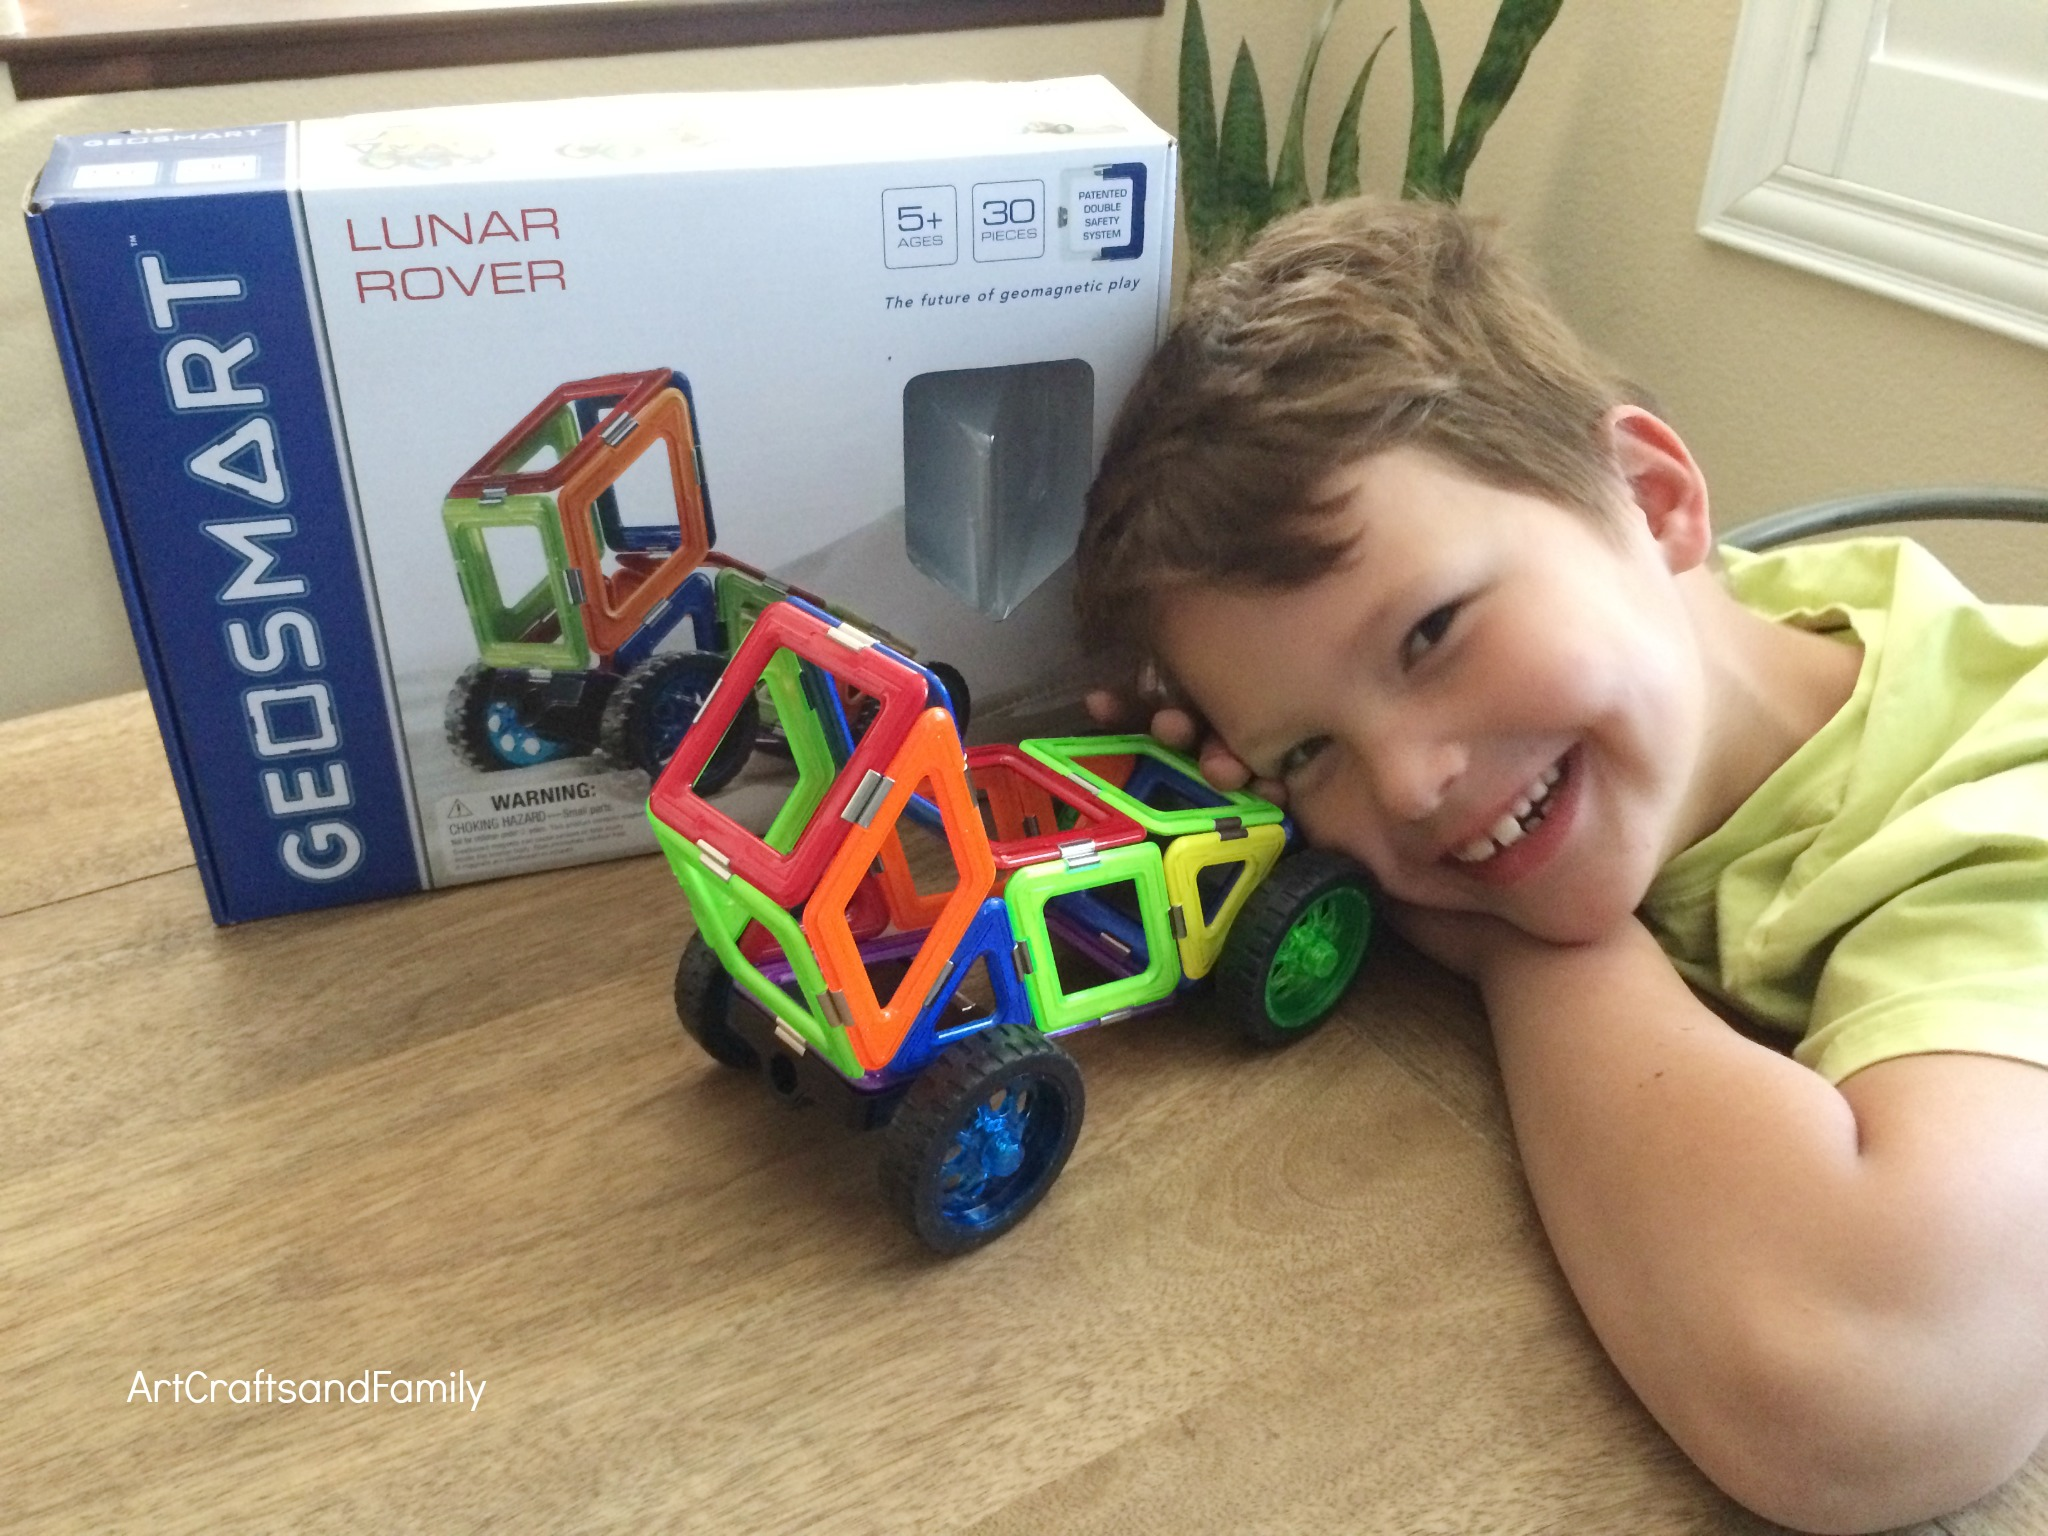 Geosmart Magnetic Construction Sets are a Holiday Hit